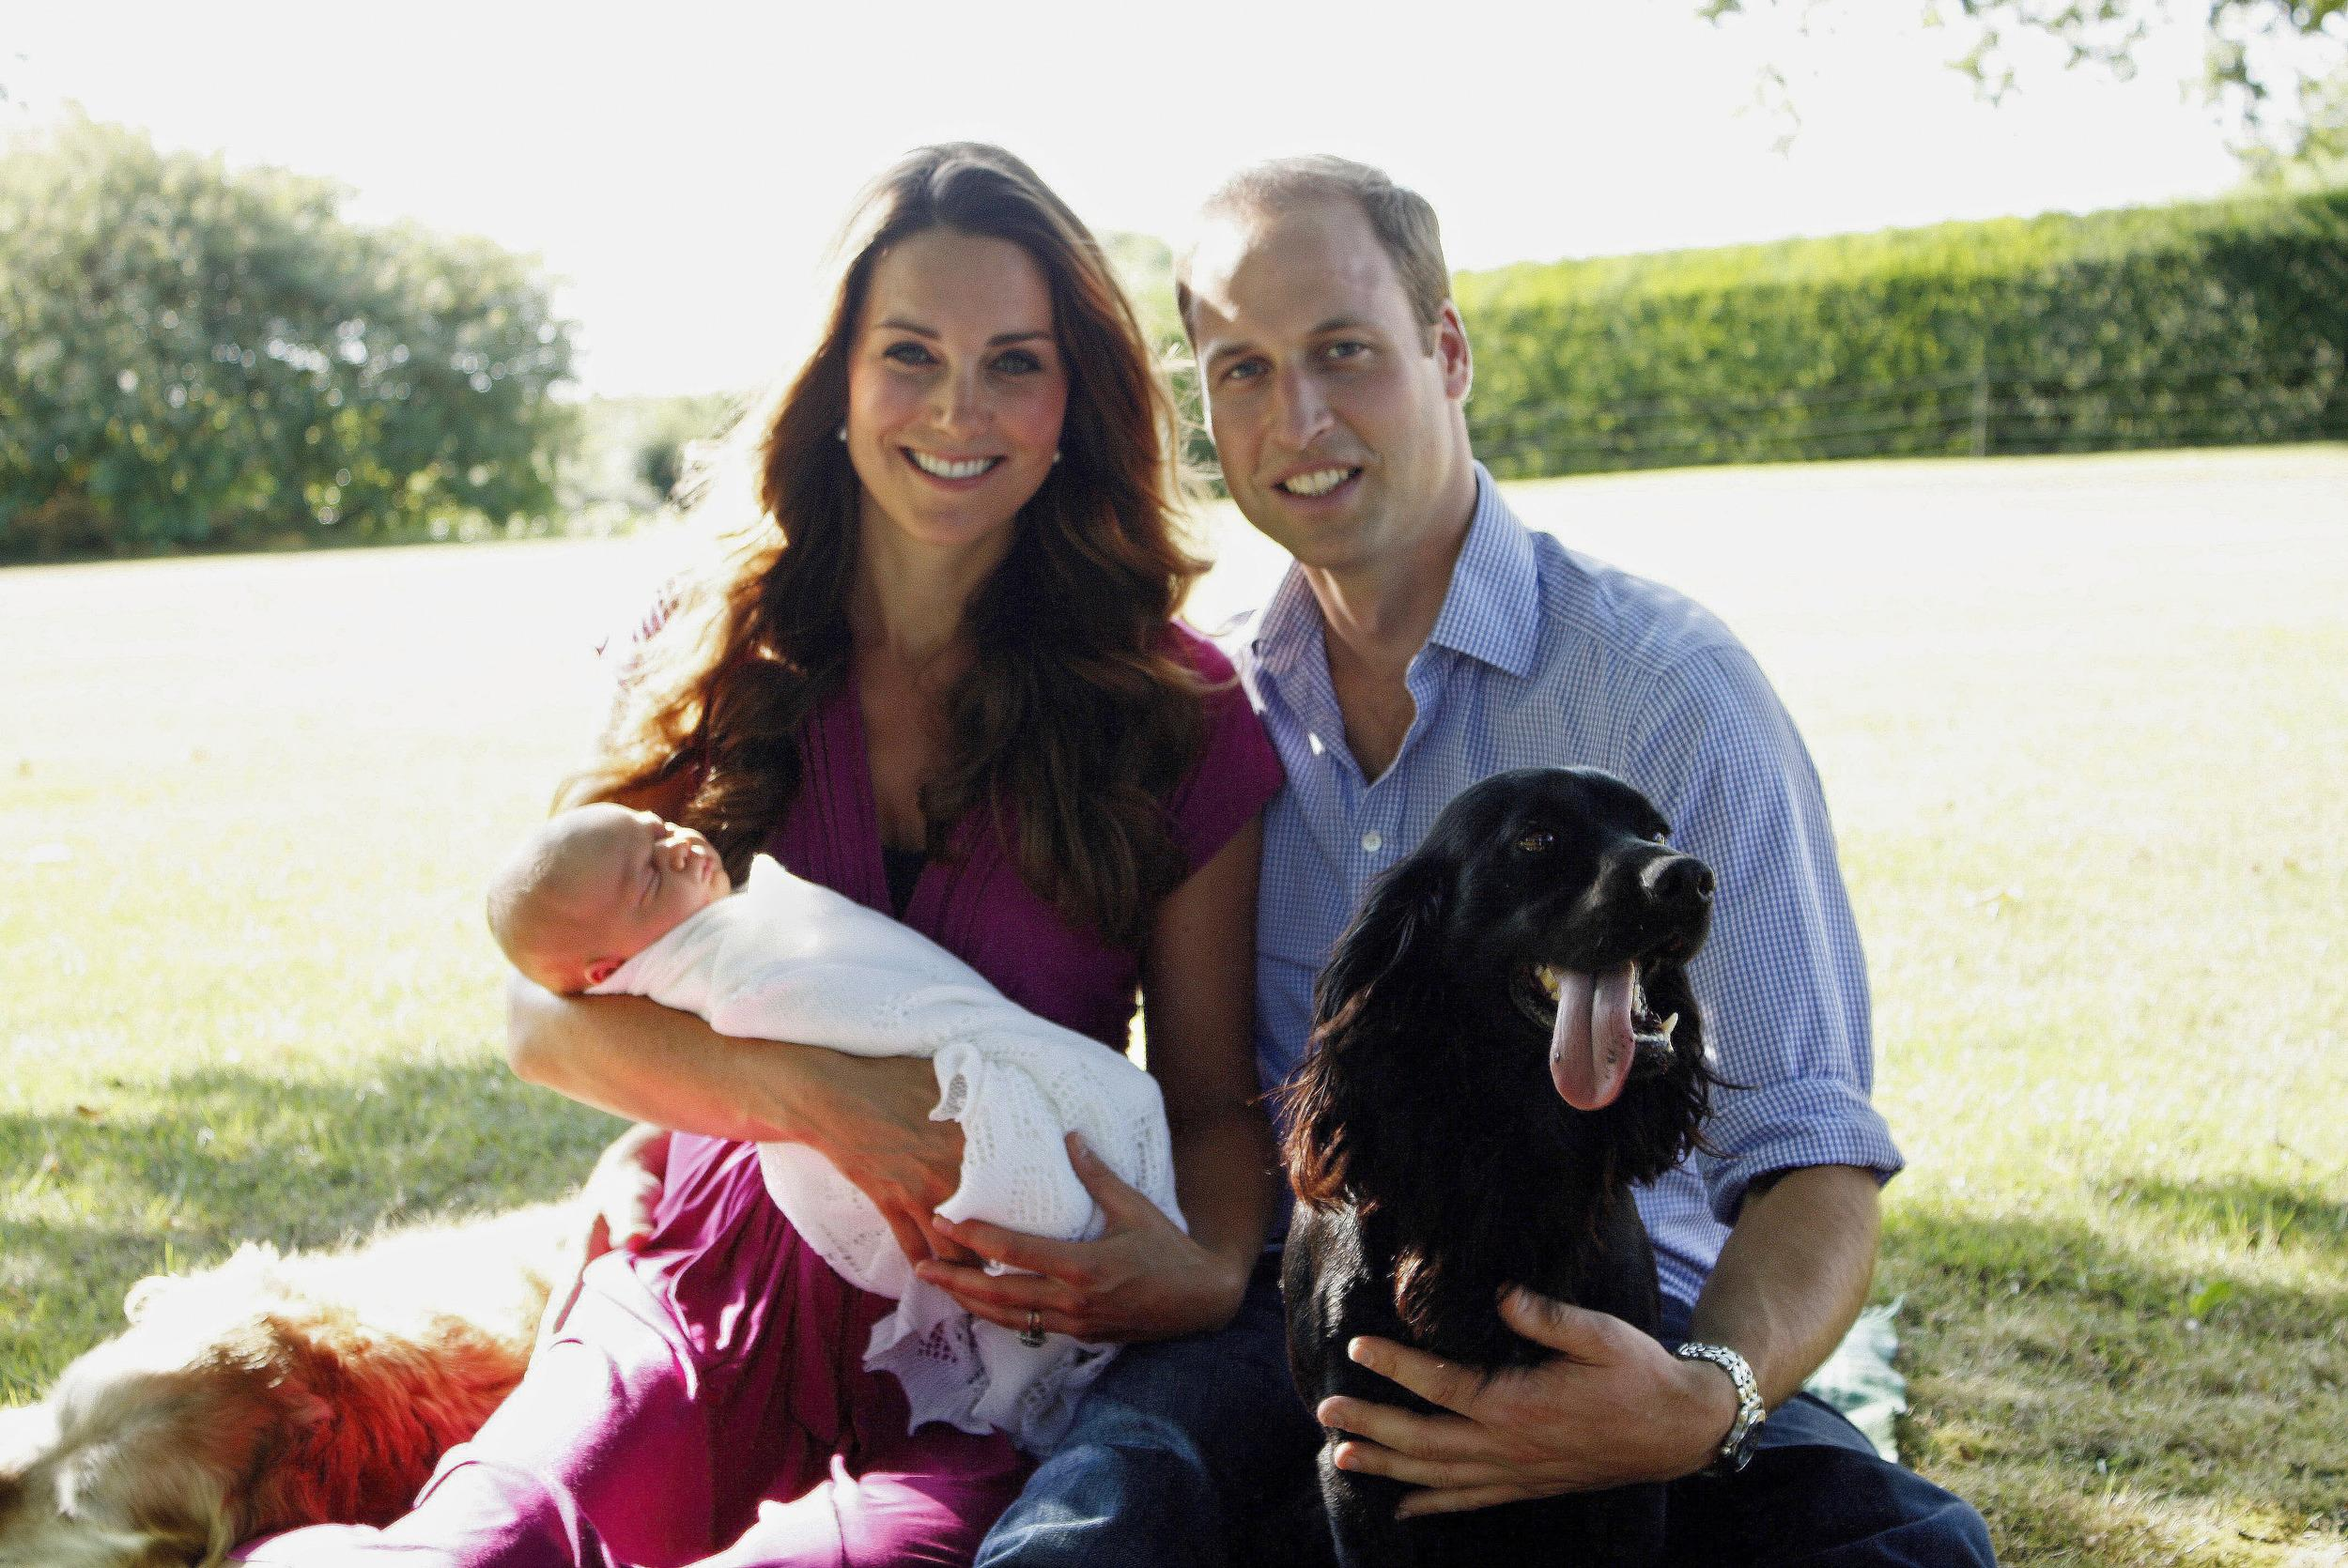 Kate wore another Seraphine knot-front dress for the photo while William was casual in a gingham button down. And in this photo, both the Middletons' family dog and Lupo made the cut!